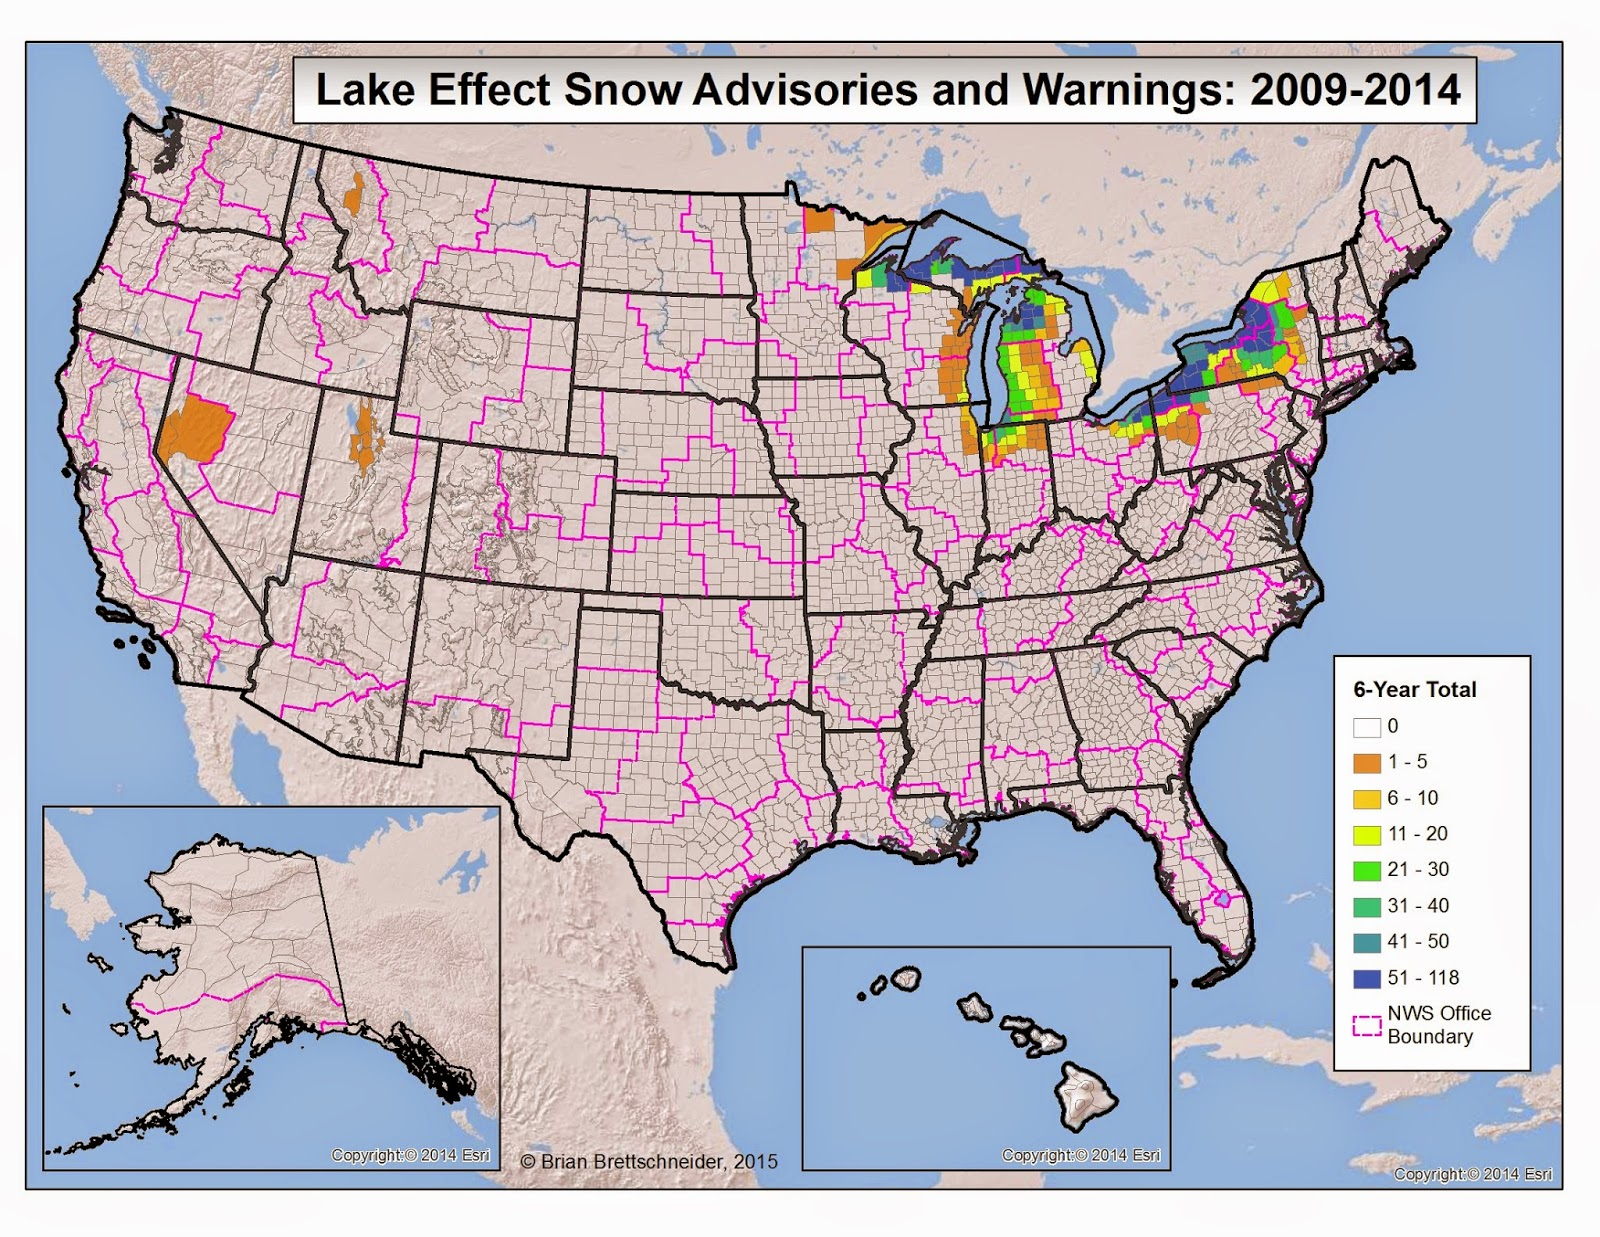 Brian Bs Climate Blog US Winter Weather Advisories And Warnings - Us weather warnings map